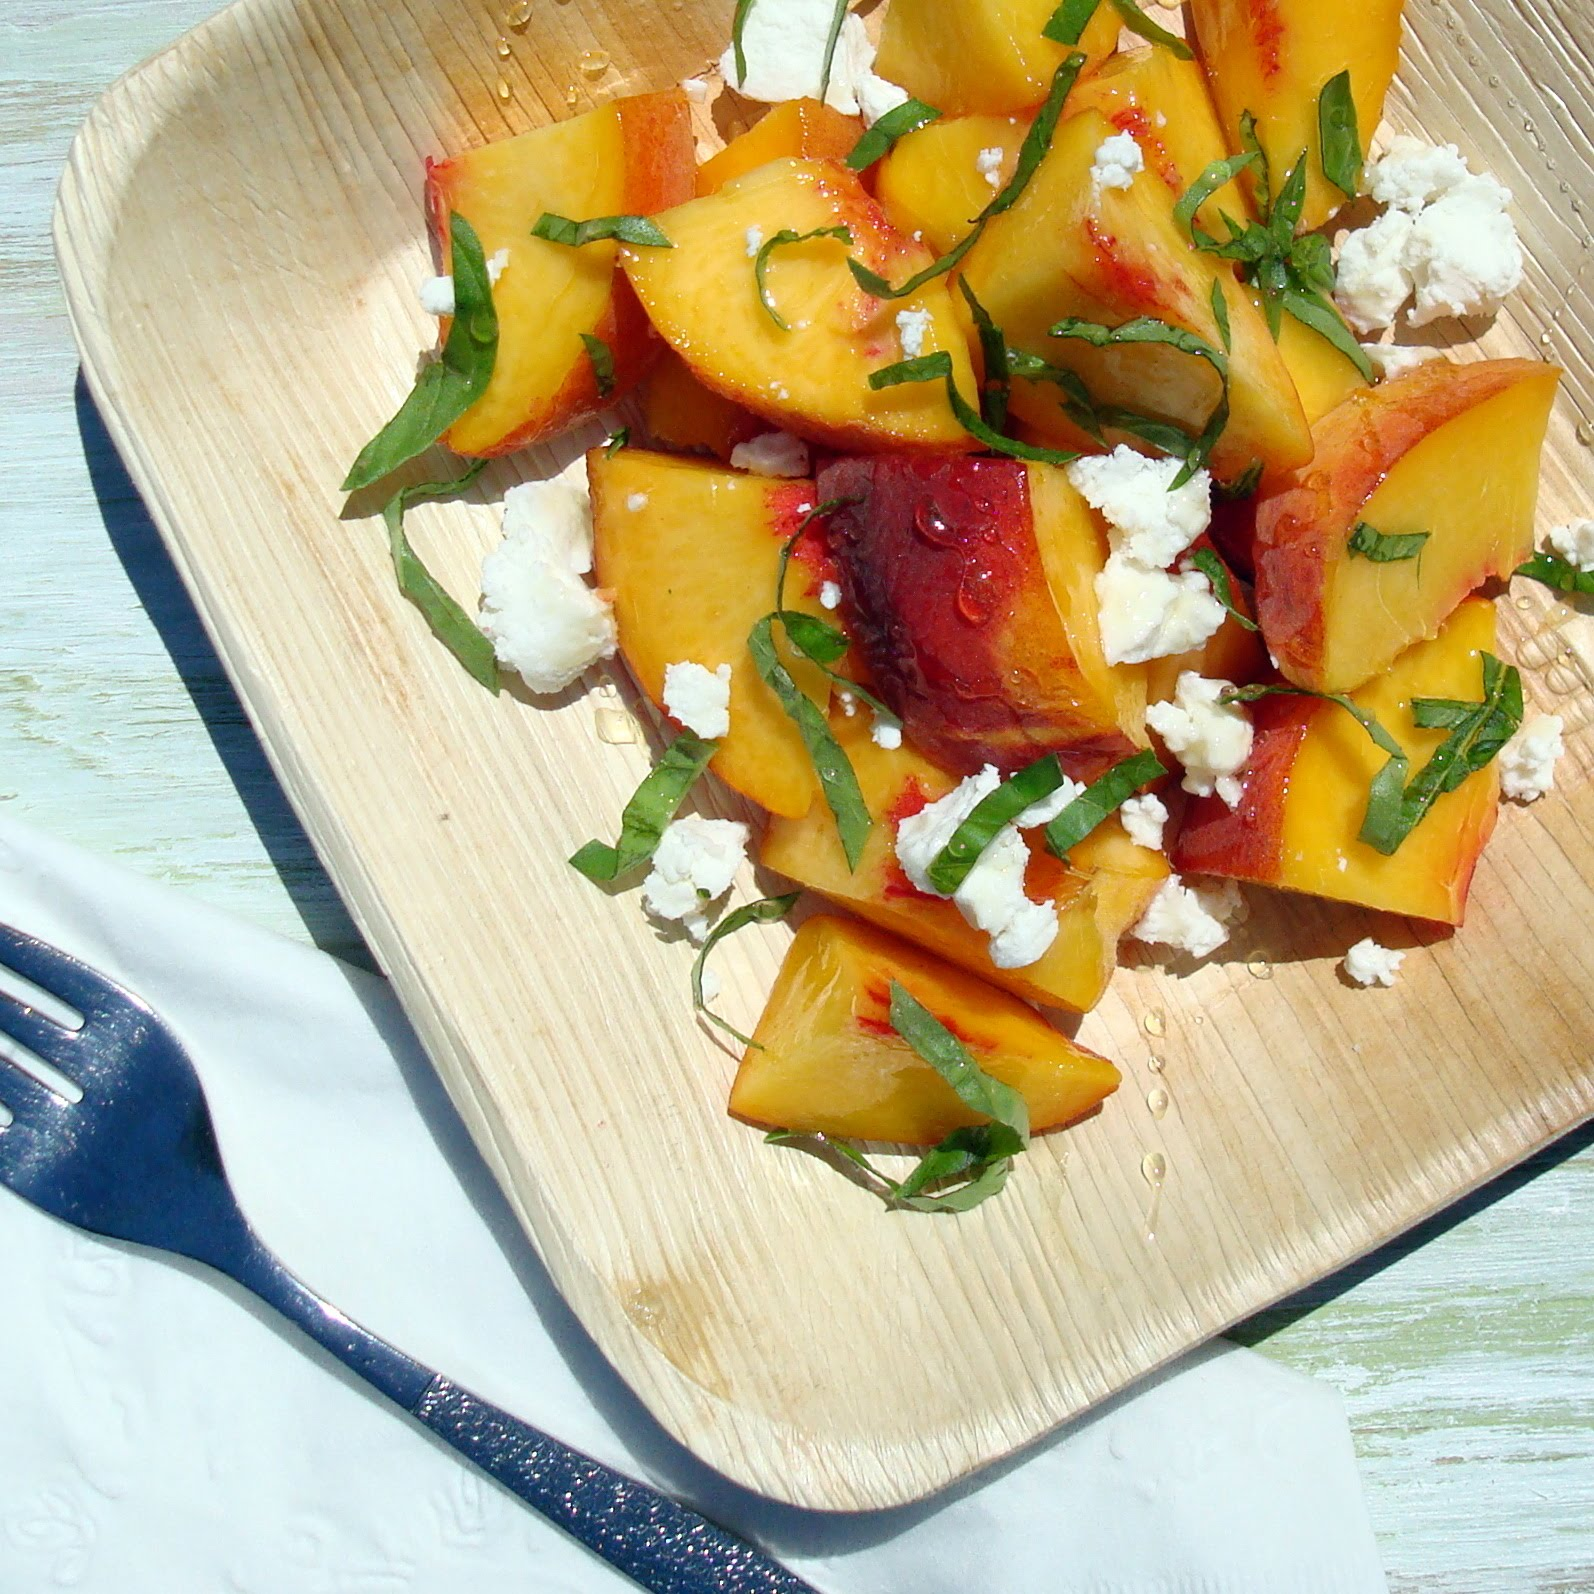 pizza peach tomato and basil salad recipe peach tomato and basil salad ...